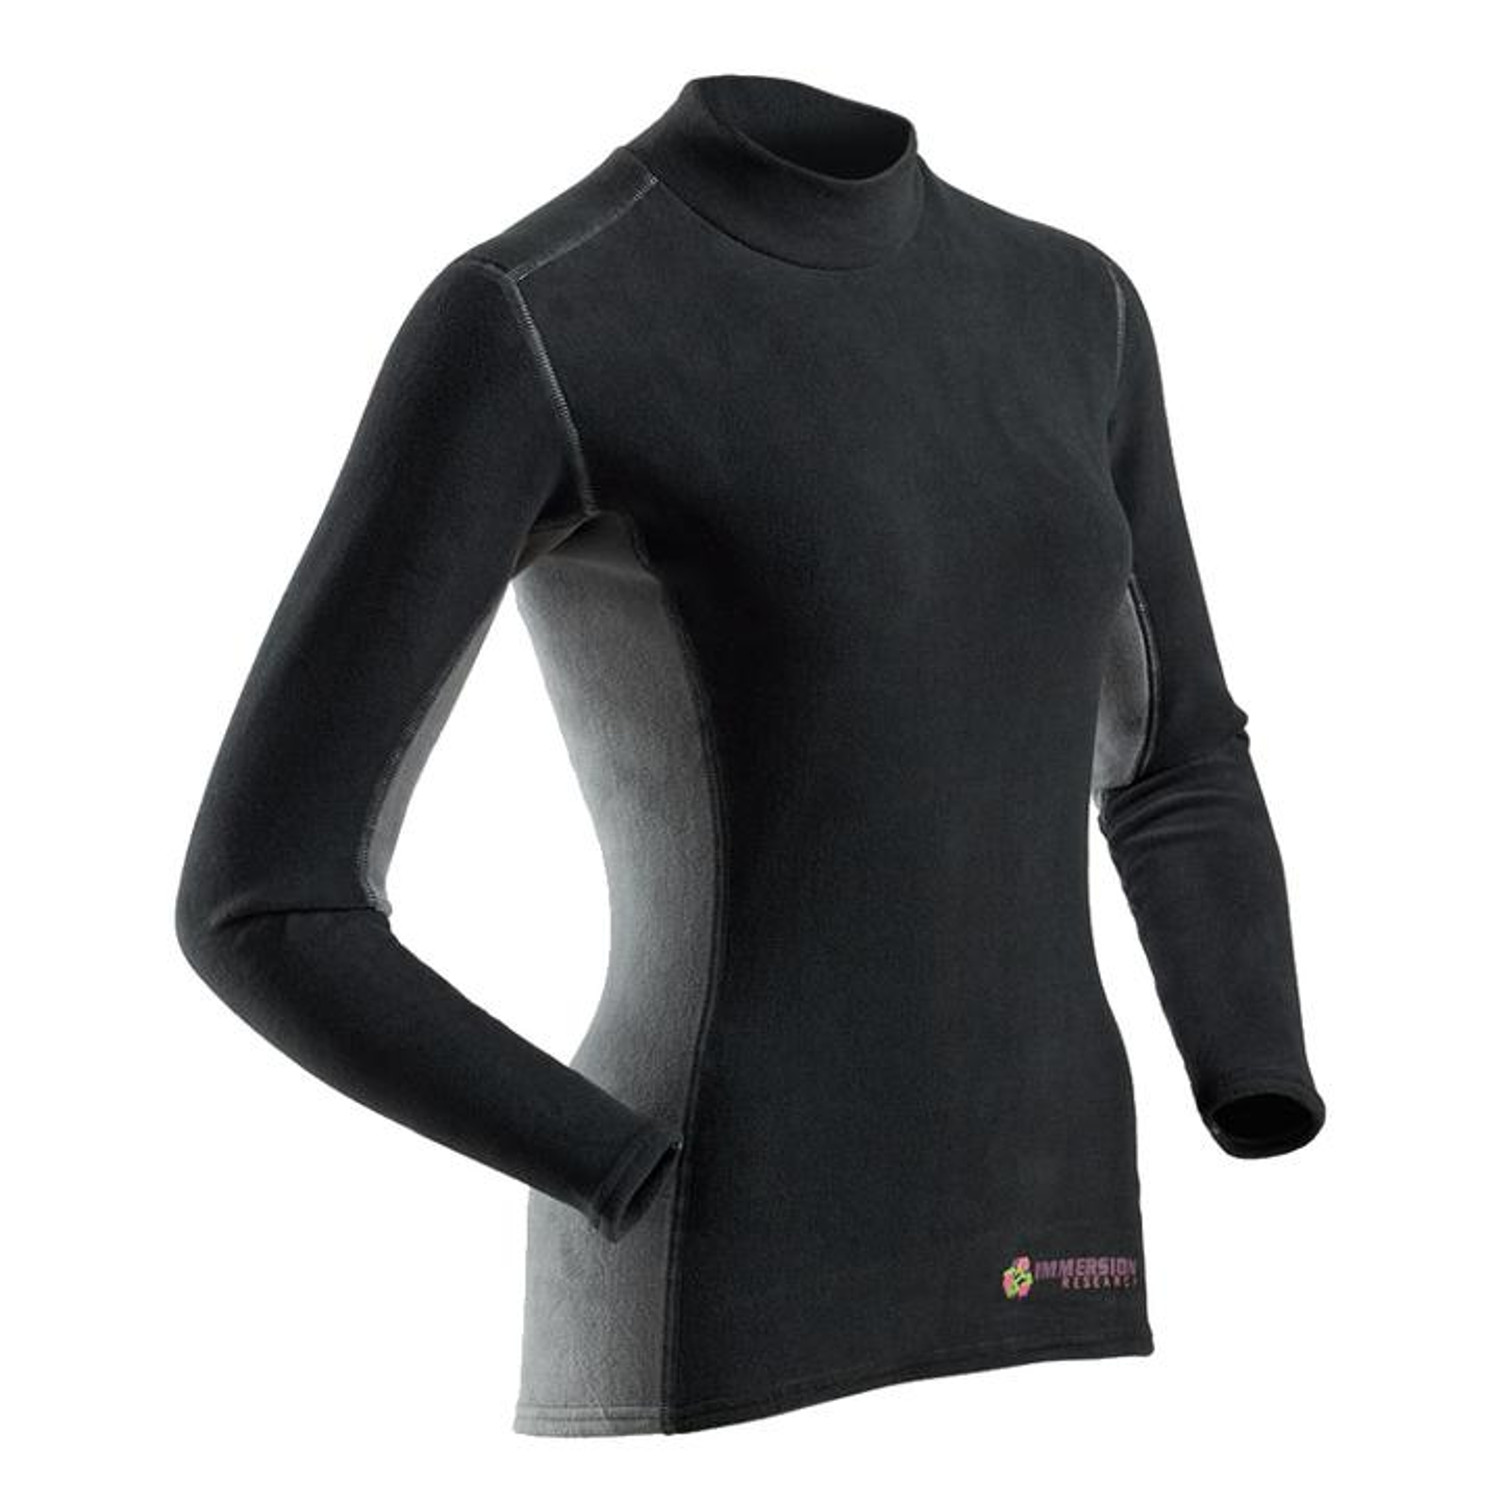 Women's Long Sleeve Thick Skin Top